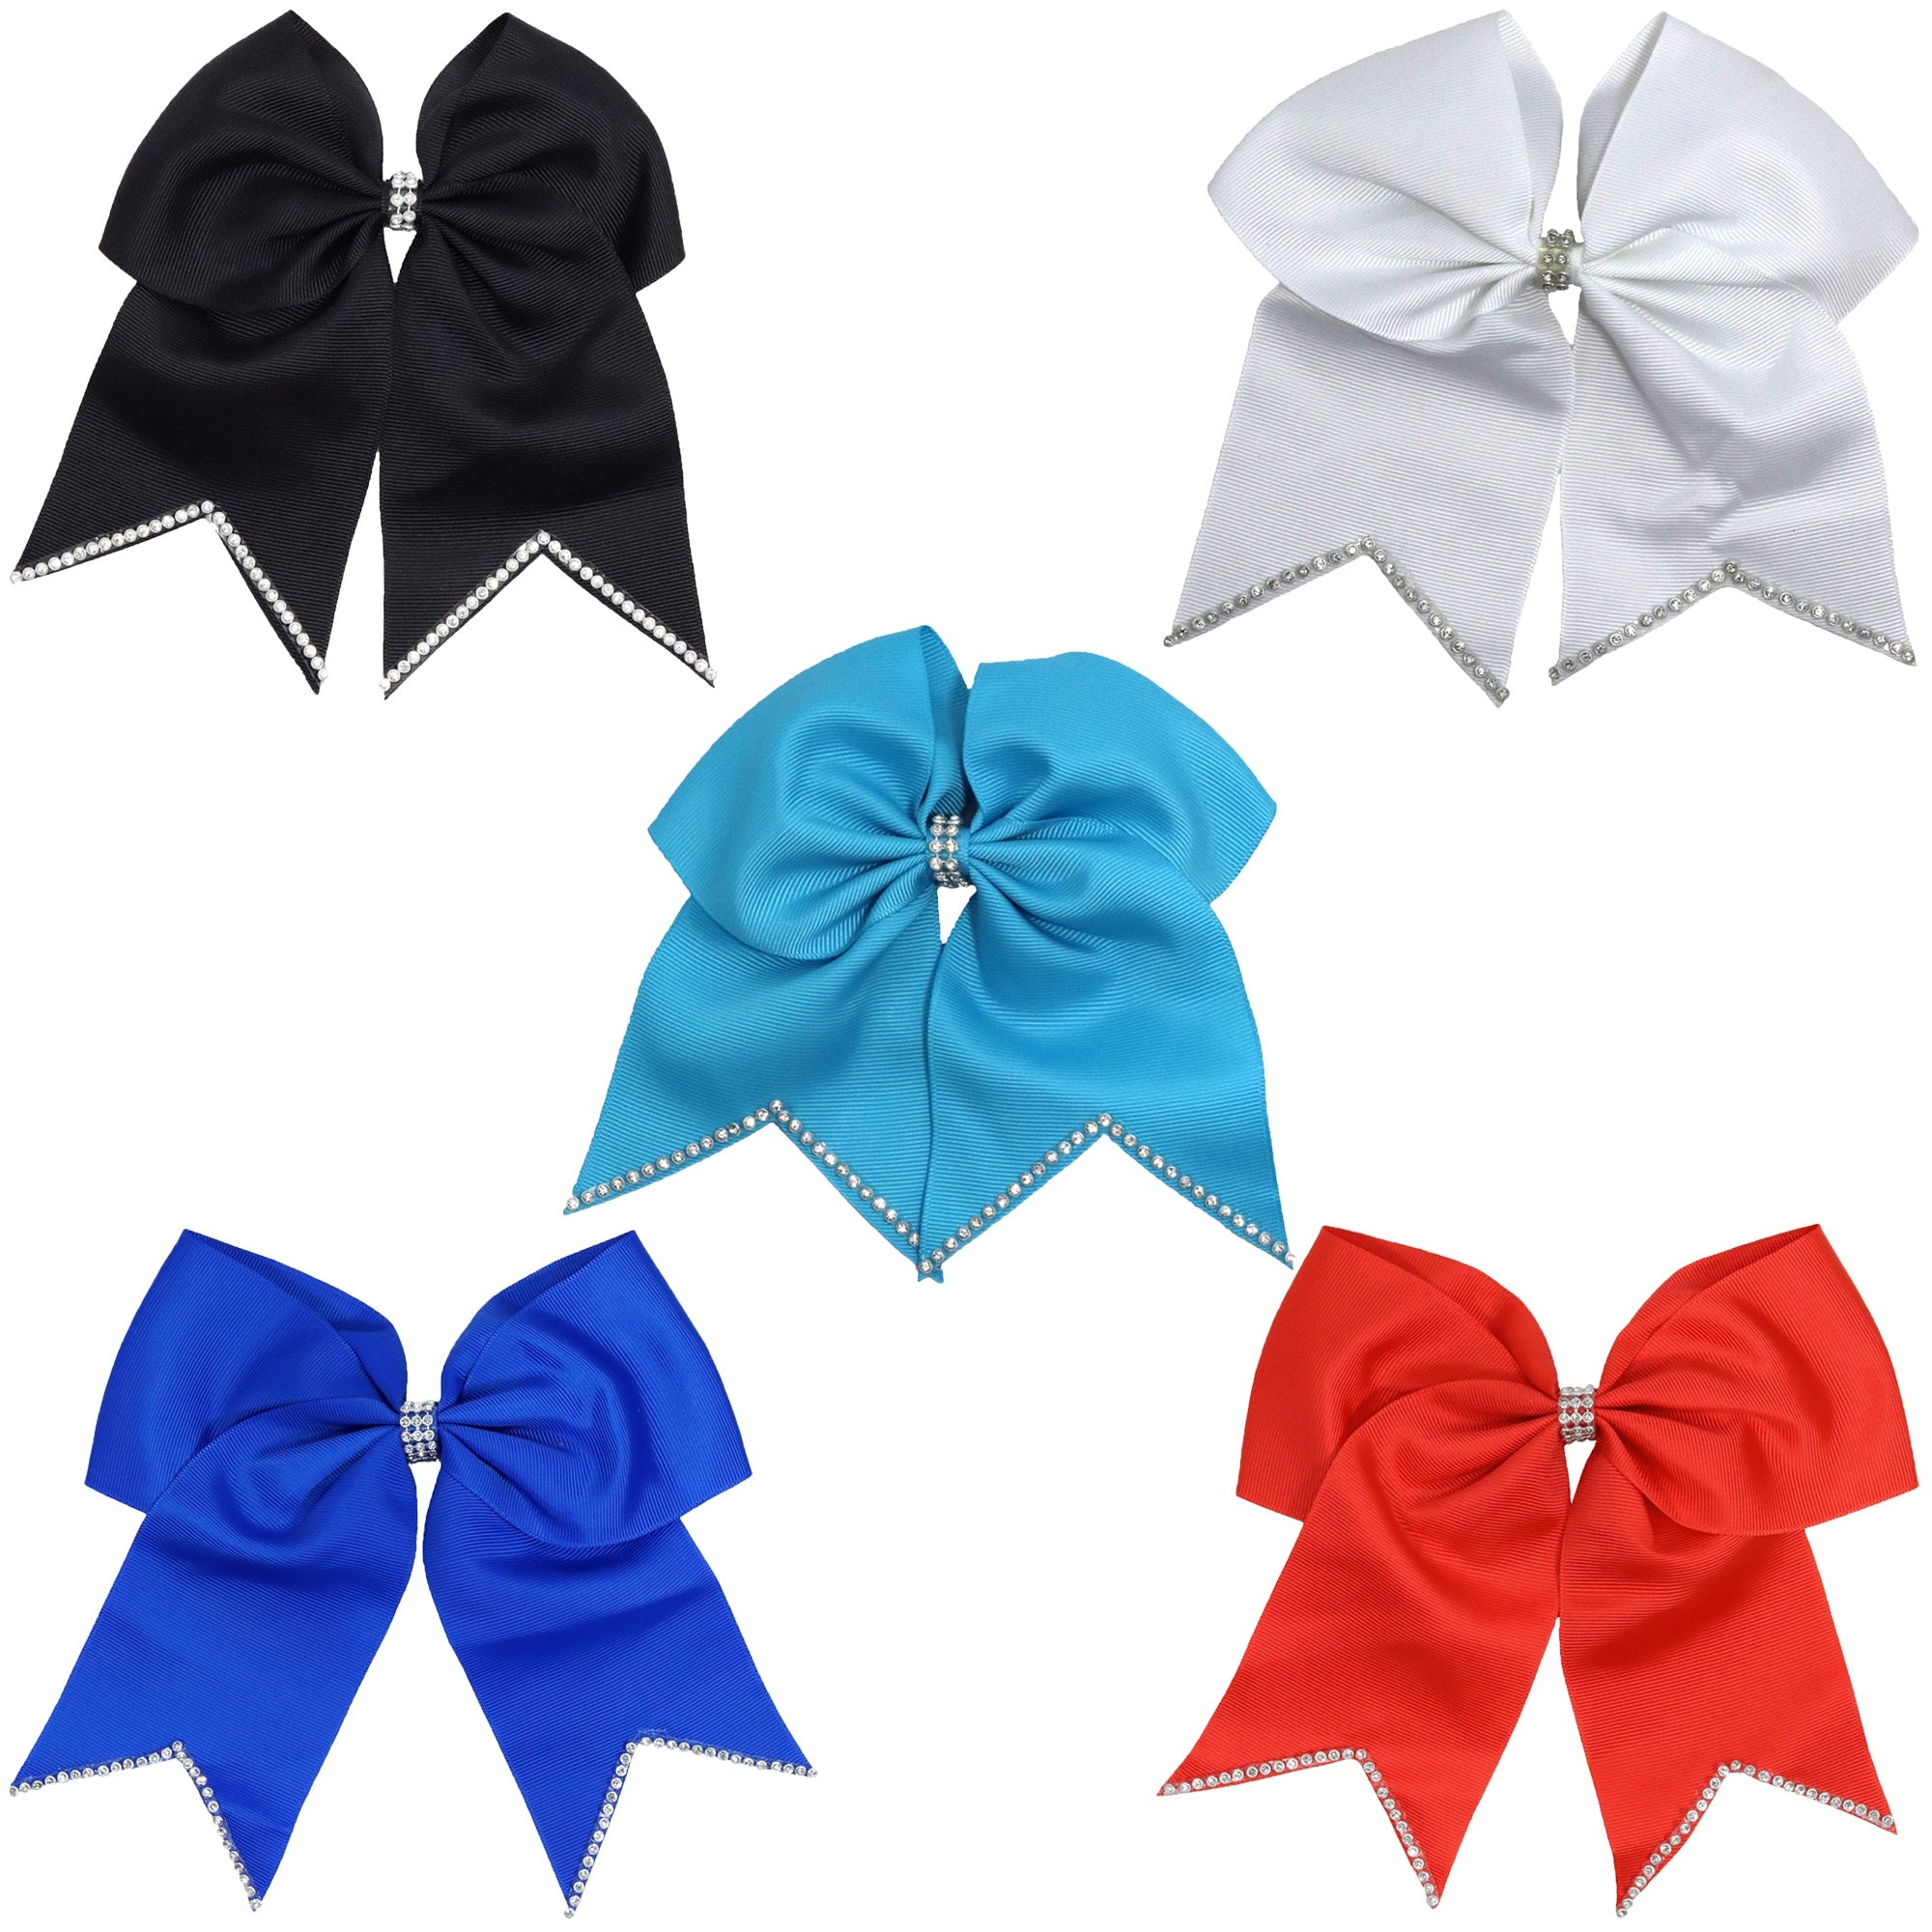 Cheer bow in 2 colors  Great Rec cheer bow  Competition cheer bow Custom team cheer bows  Green and Gold cheer bow Dance bow